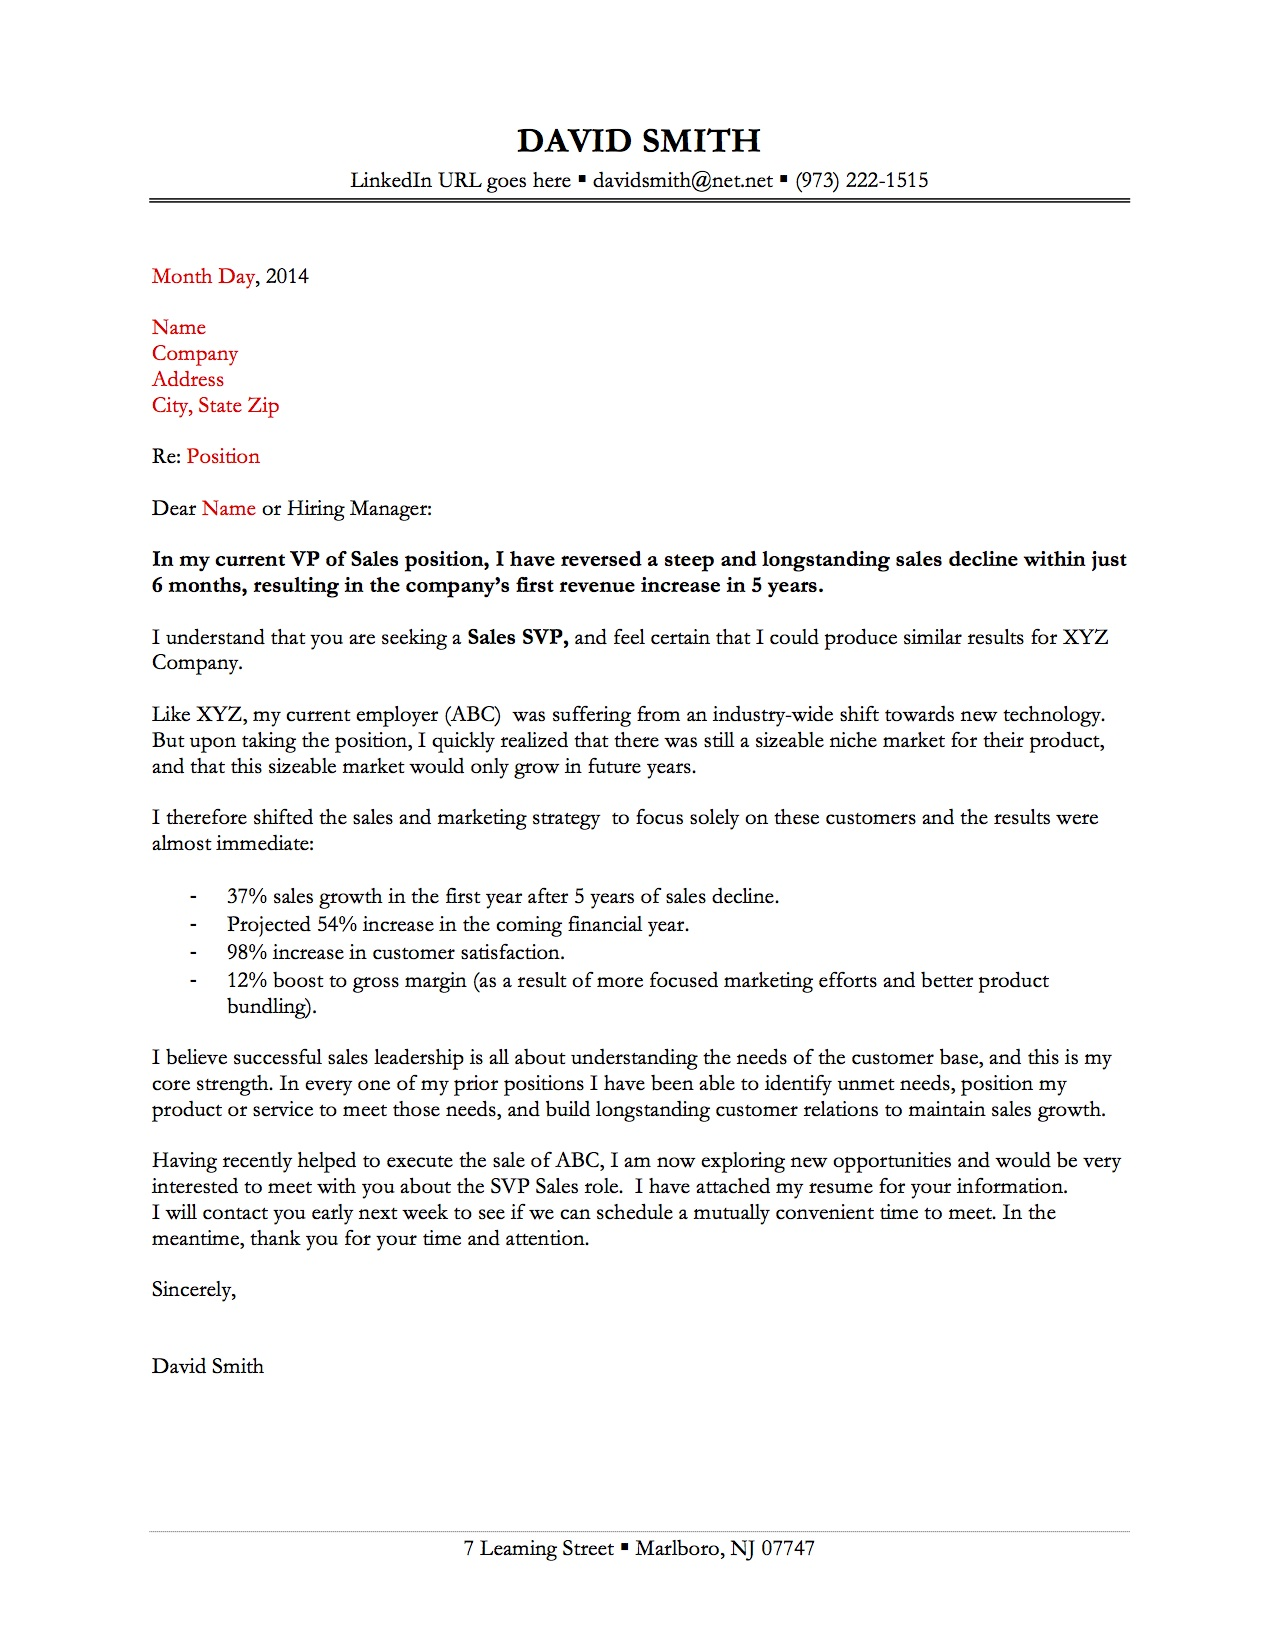 sample cover letter 2 - Writing A Cover Letter To A Company